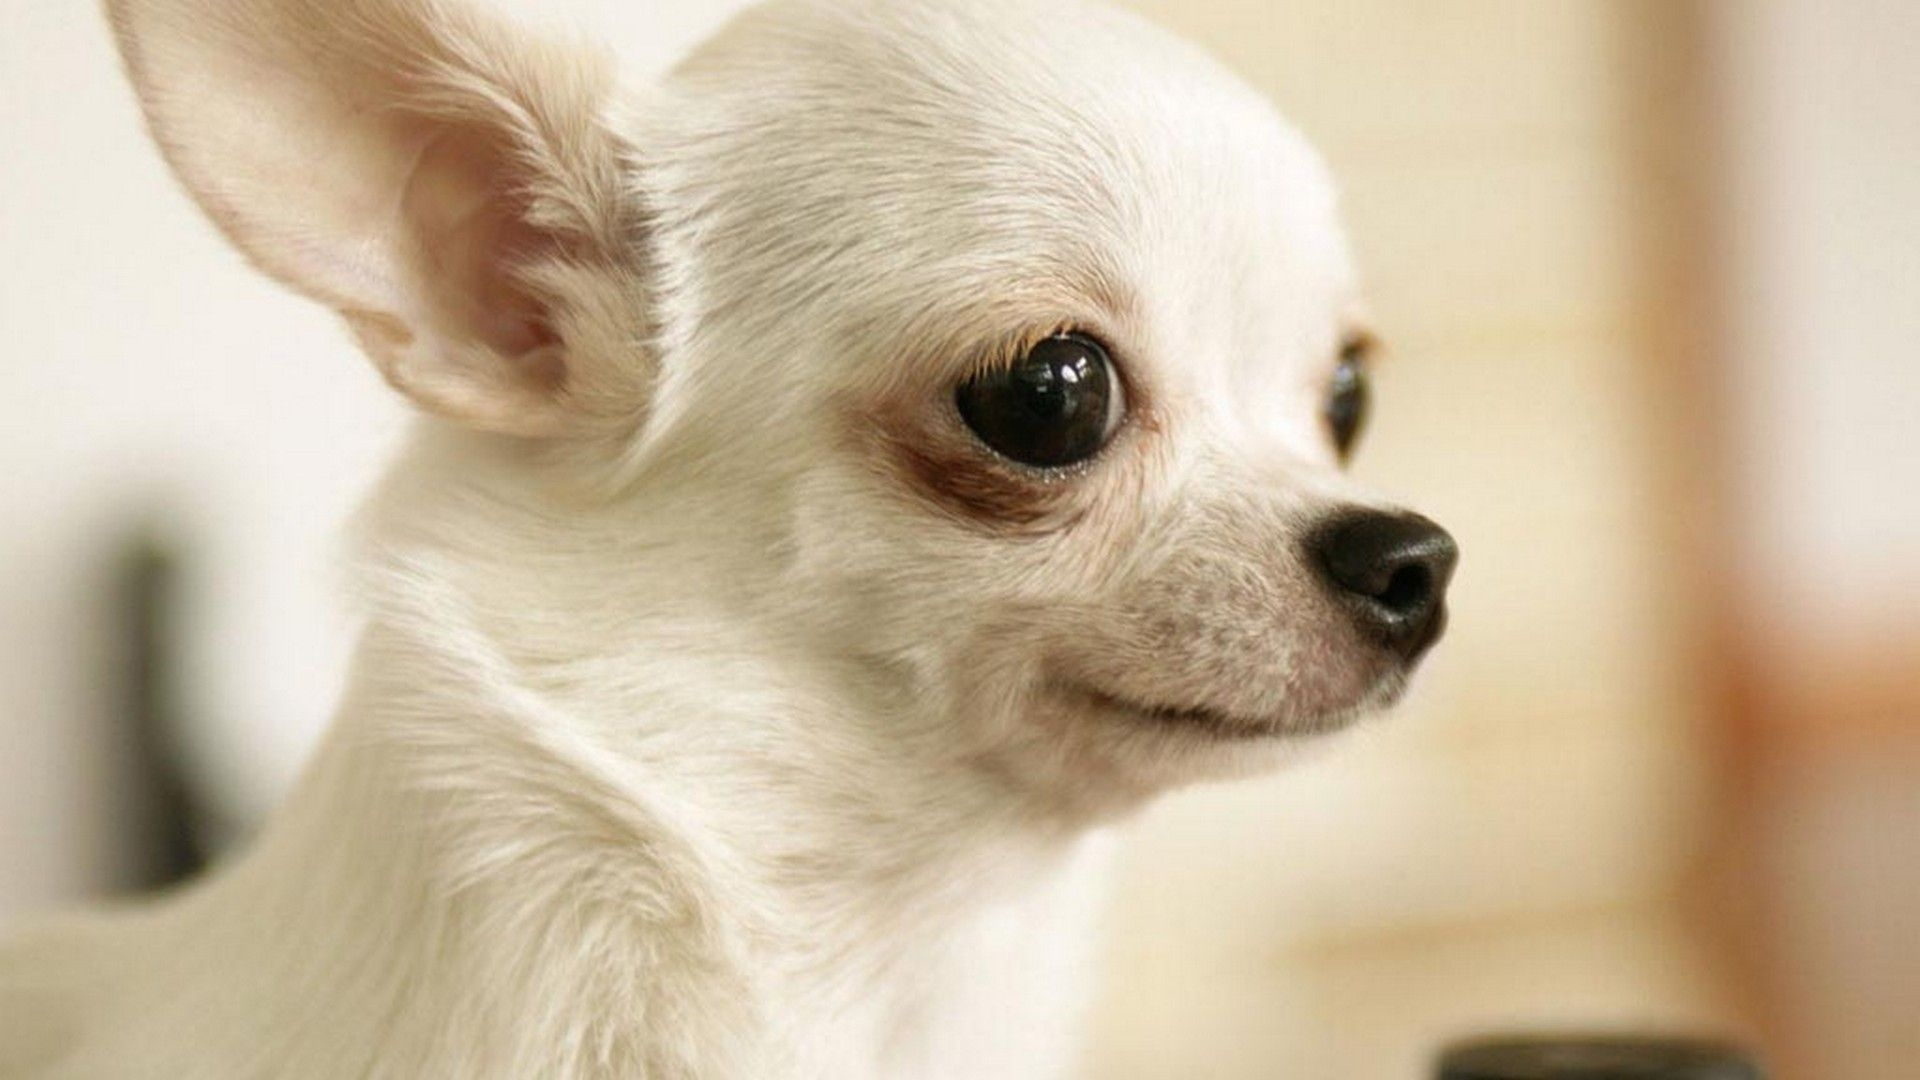 Puppy Desktop Wallpaper Best Hd Wallpapers Chihuahua Dog Pictures Chihuahua Chihuahua Dogs